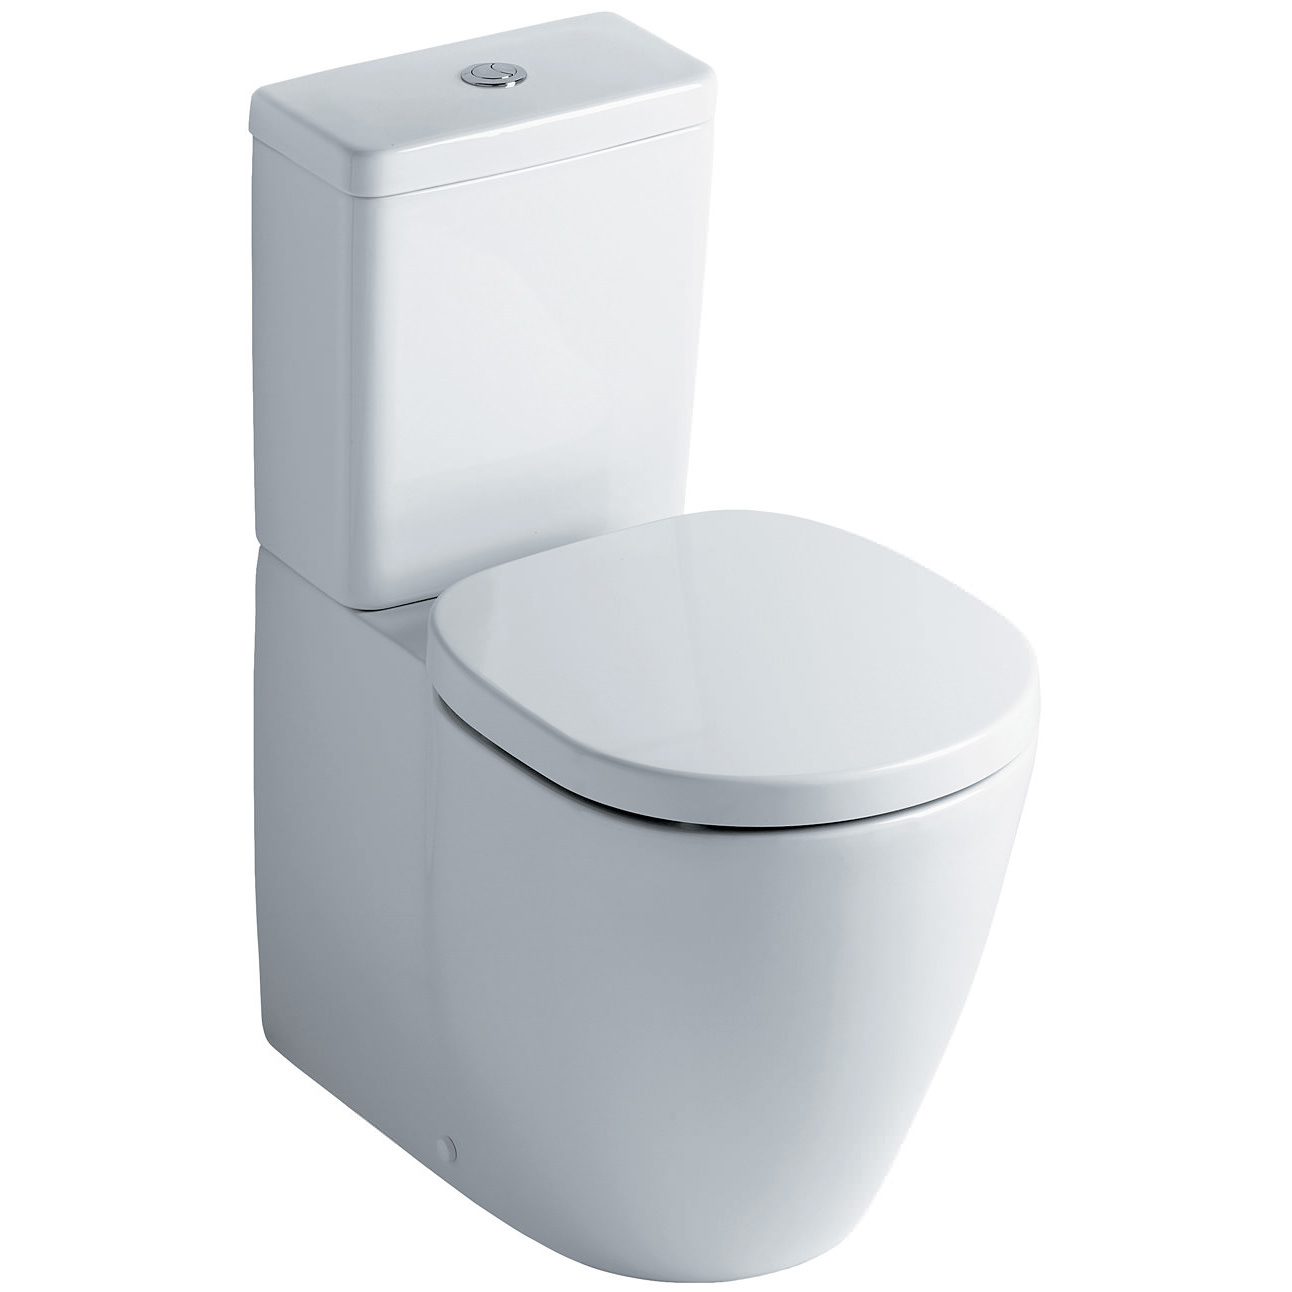 Wc Ideal Standard Ideal Standard Concept Cube Close Coupled Back-to-wall Wc Pan